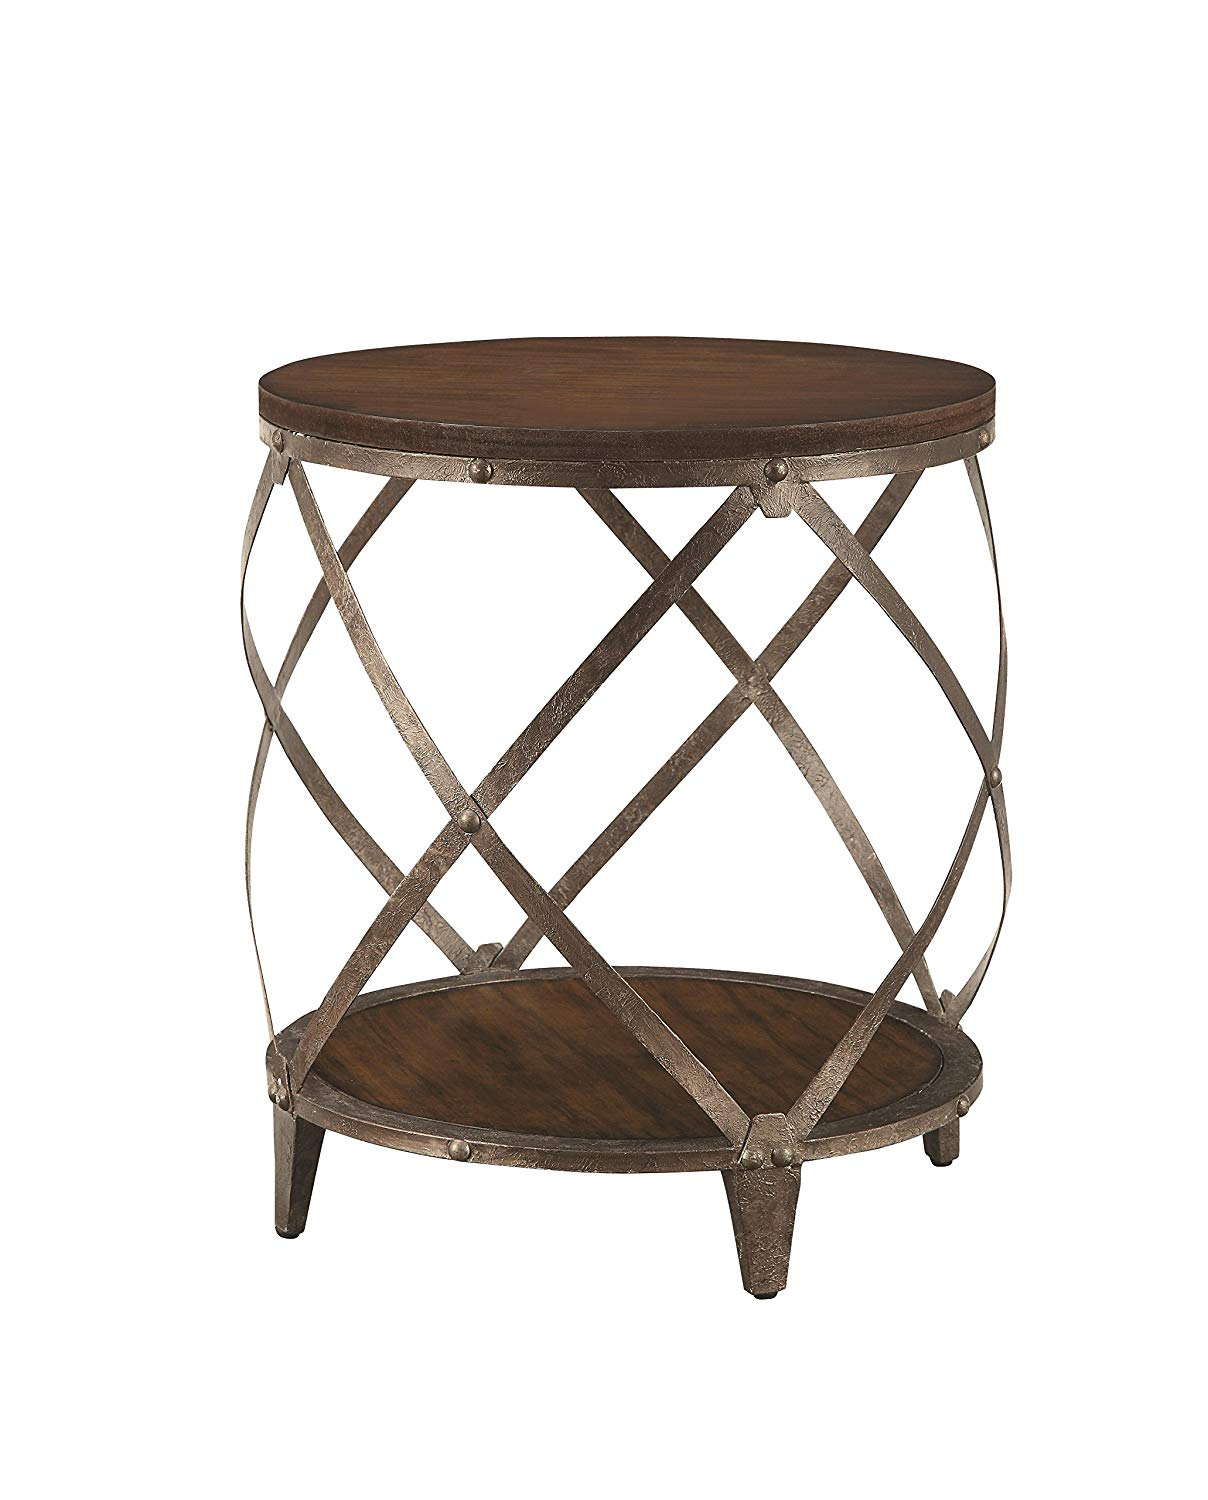 coaster home furnishings casual accent table oak and round metal end red brown kitchen dining modern furniture edmonton weathered grey small light side scarves knotty pine coffee